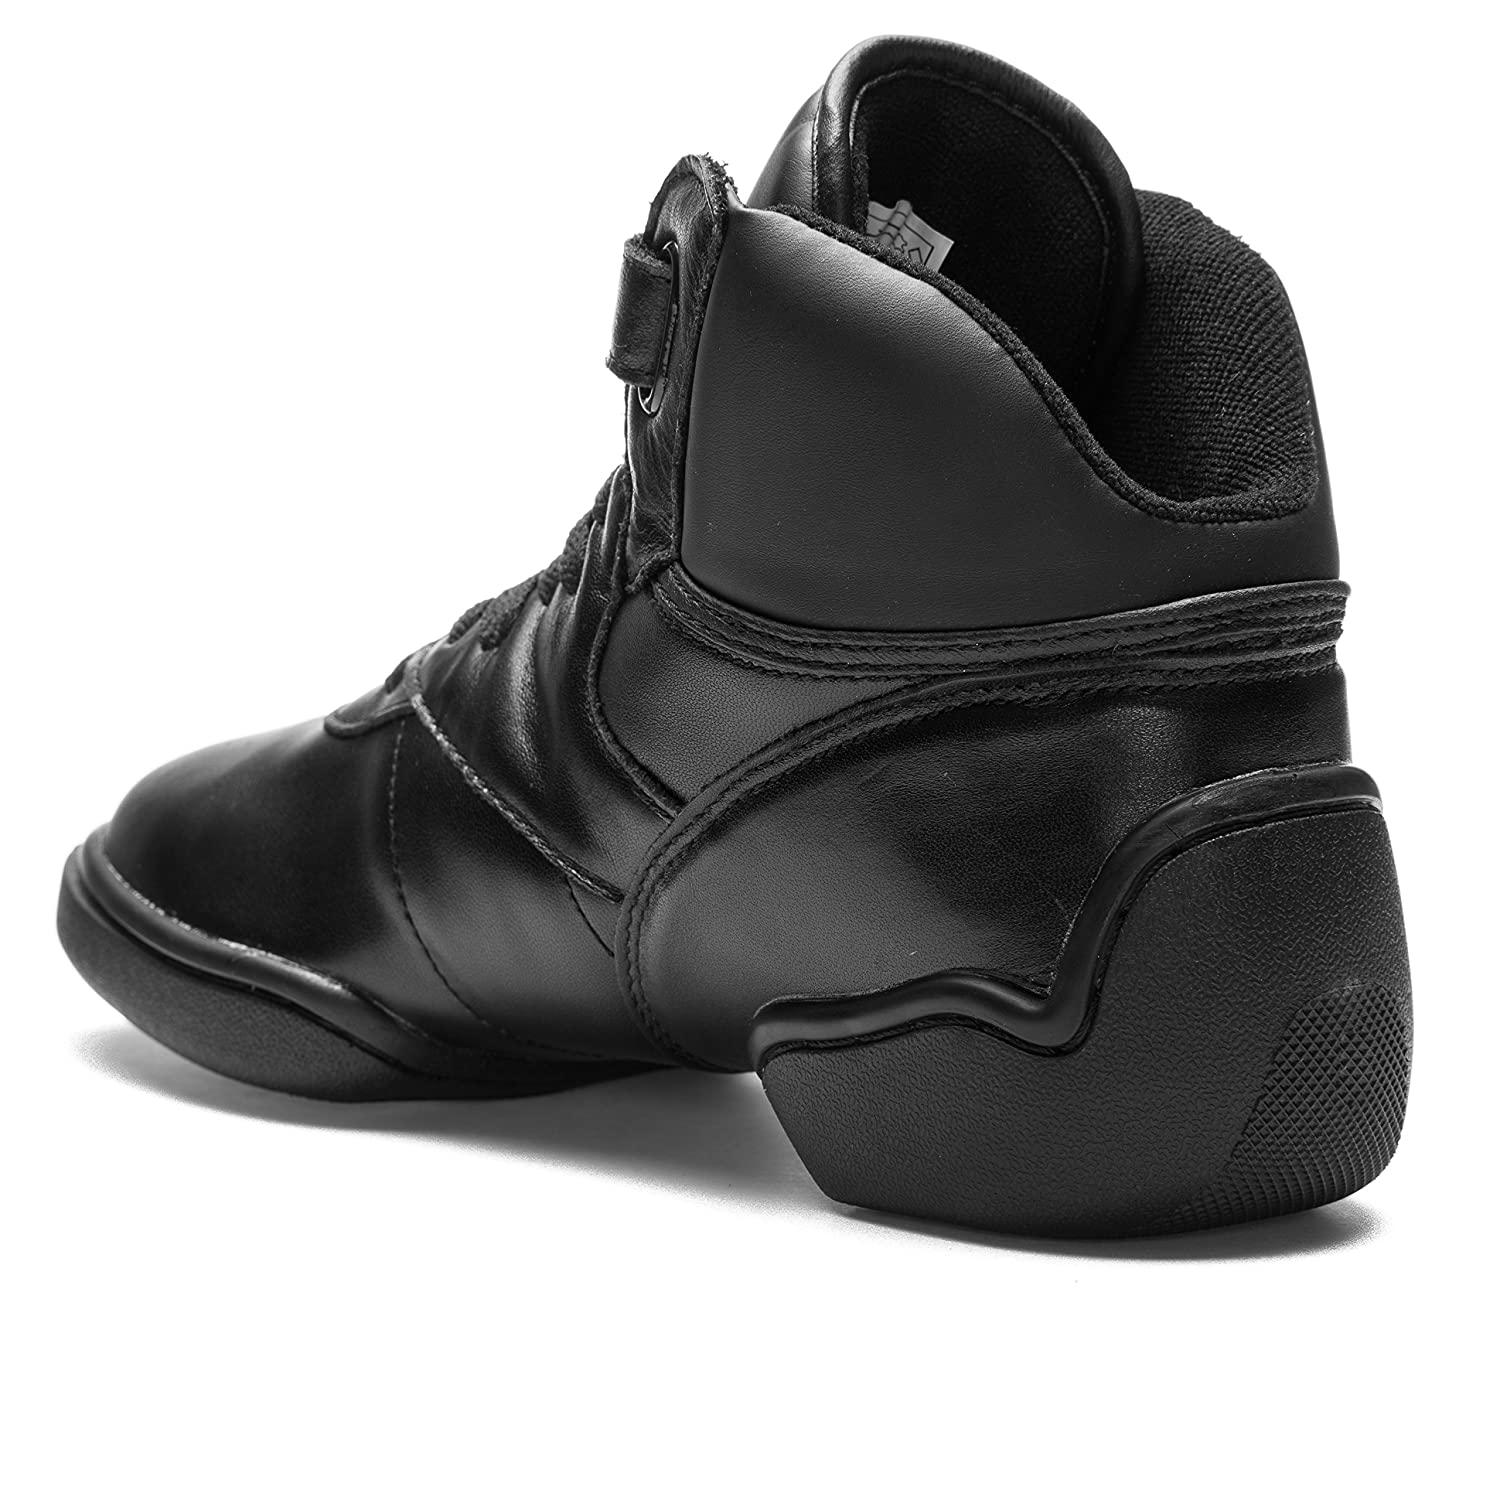 1500 Rumpf Jazz Street Hip Hop Fitness Sports Dance High Top Sneaker Basket  de danse noir: Amazon.fr: Chaussures et Sacs